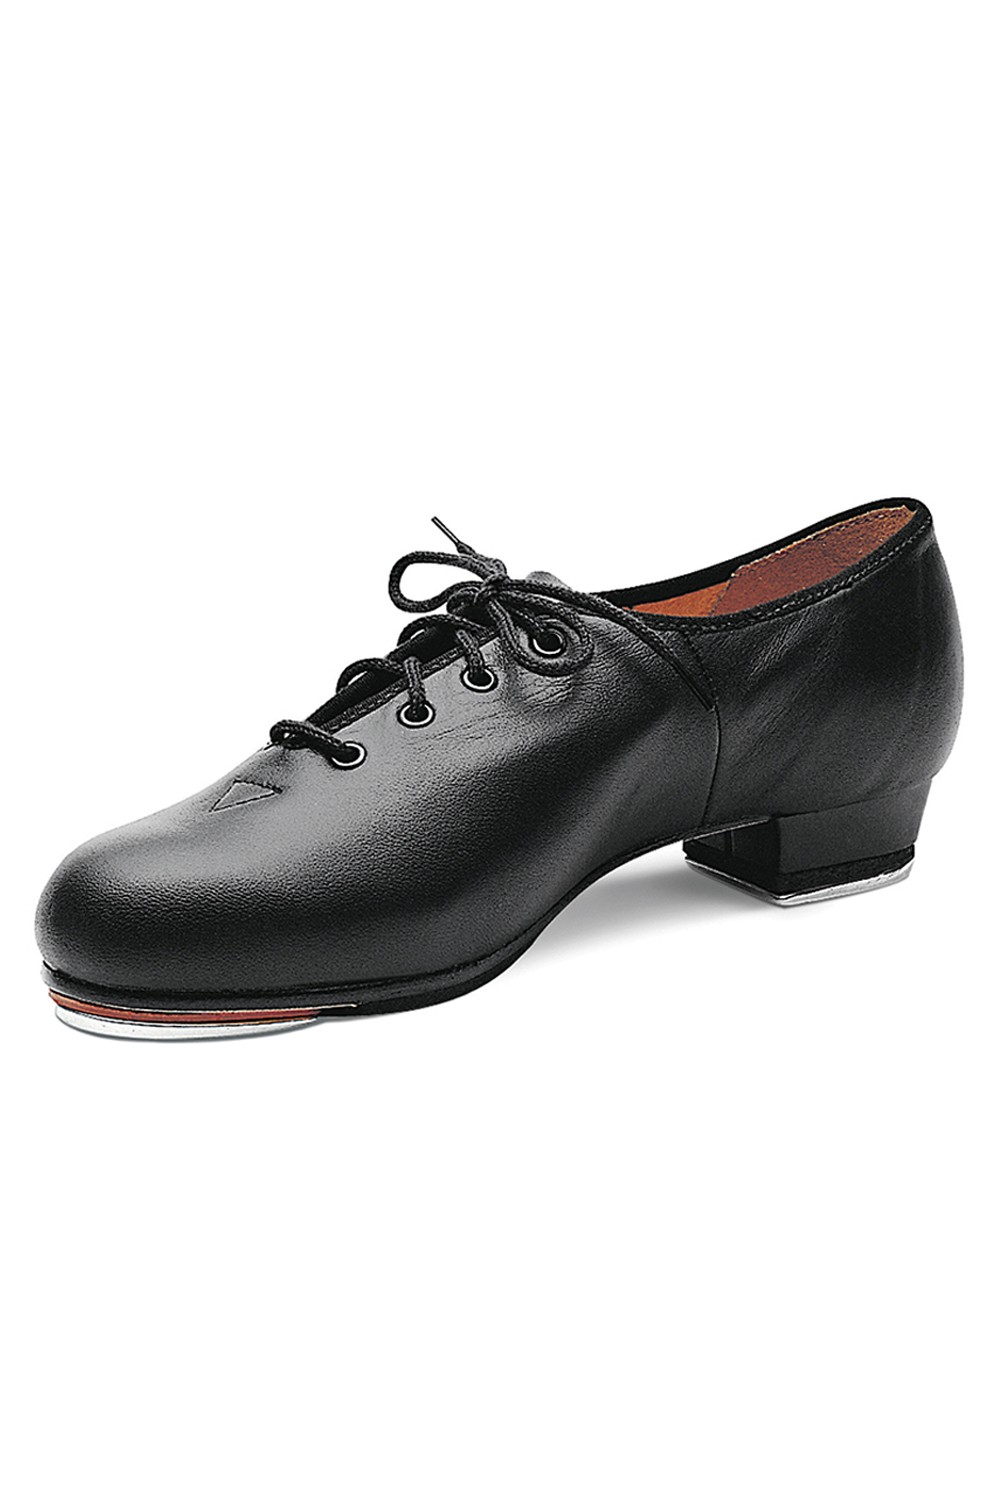 2746d98262fd BLOCH® Exceptional Children s Dance Shoes - BLOCH® Shop EU